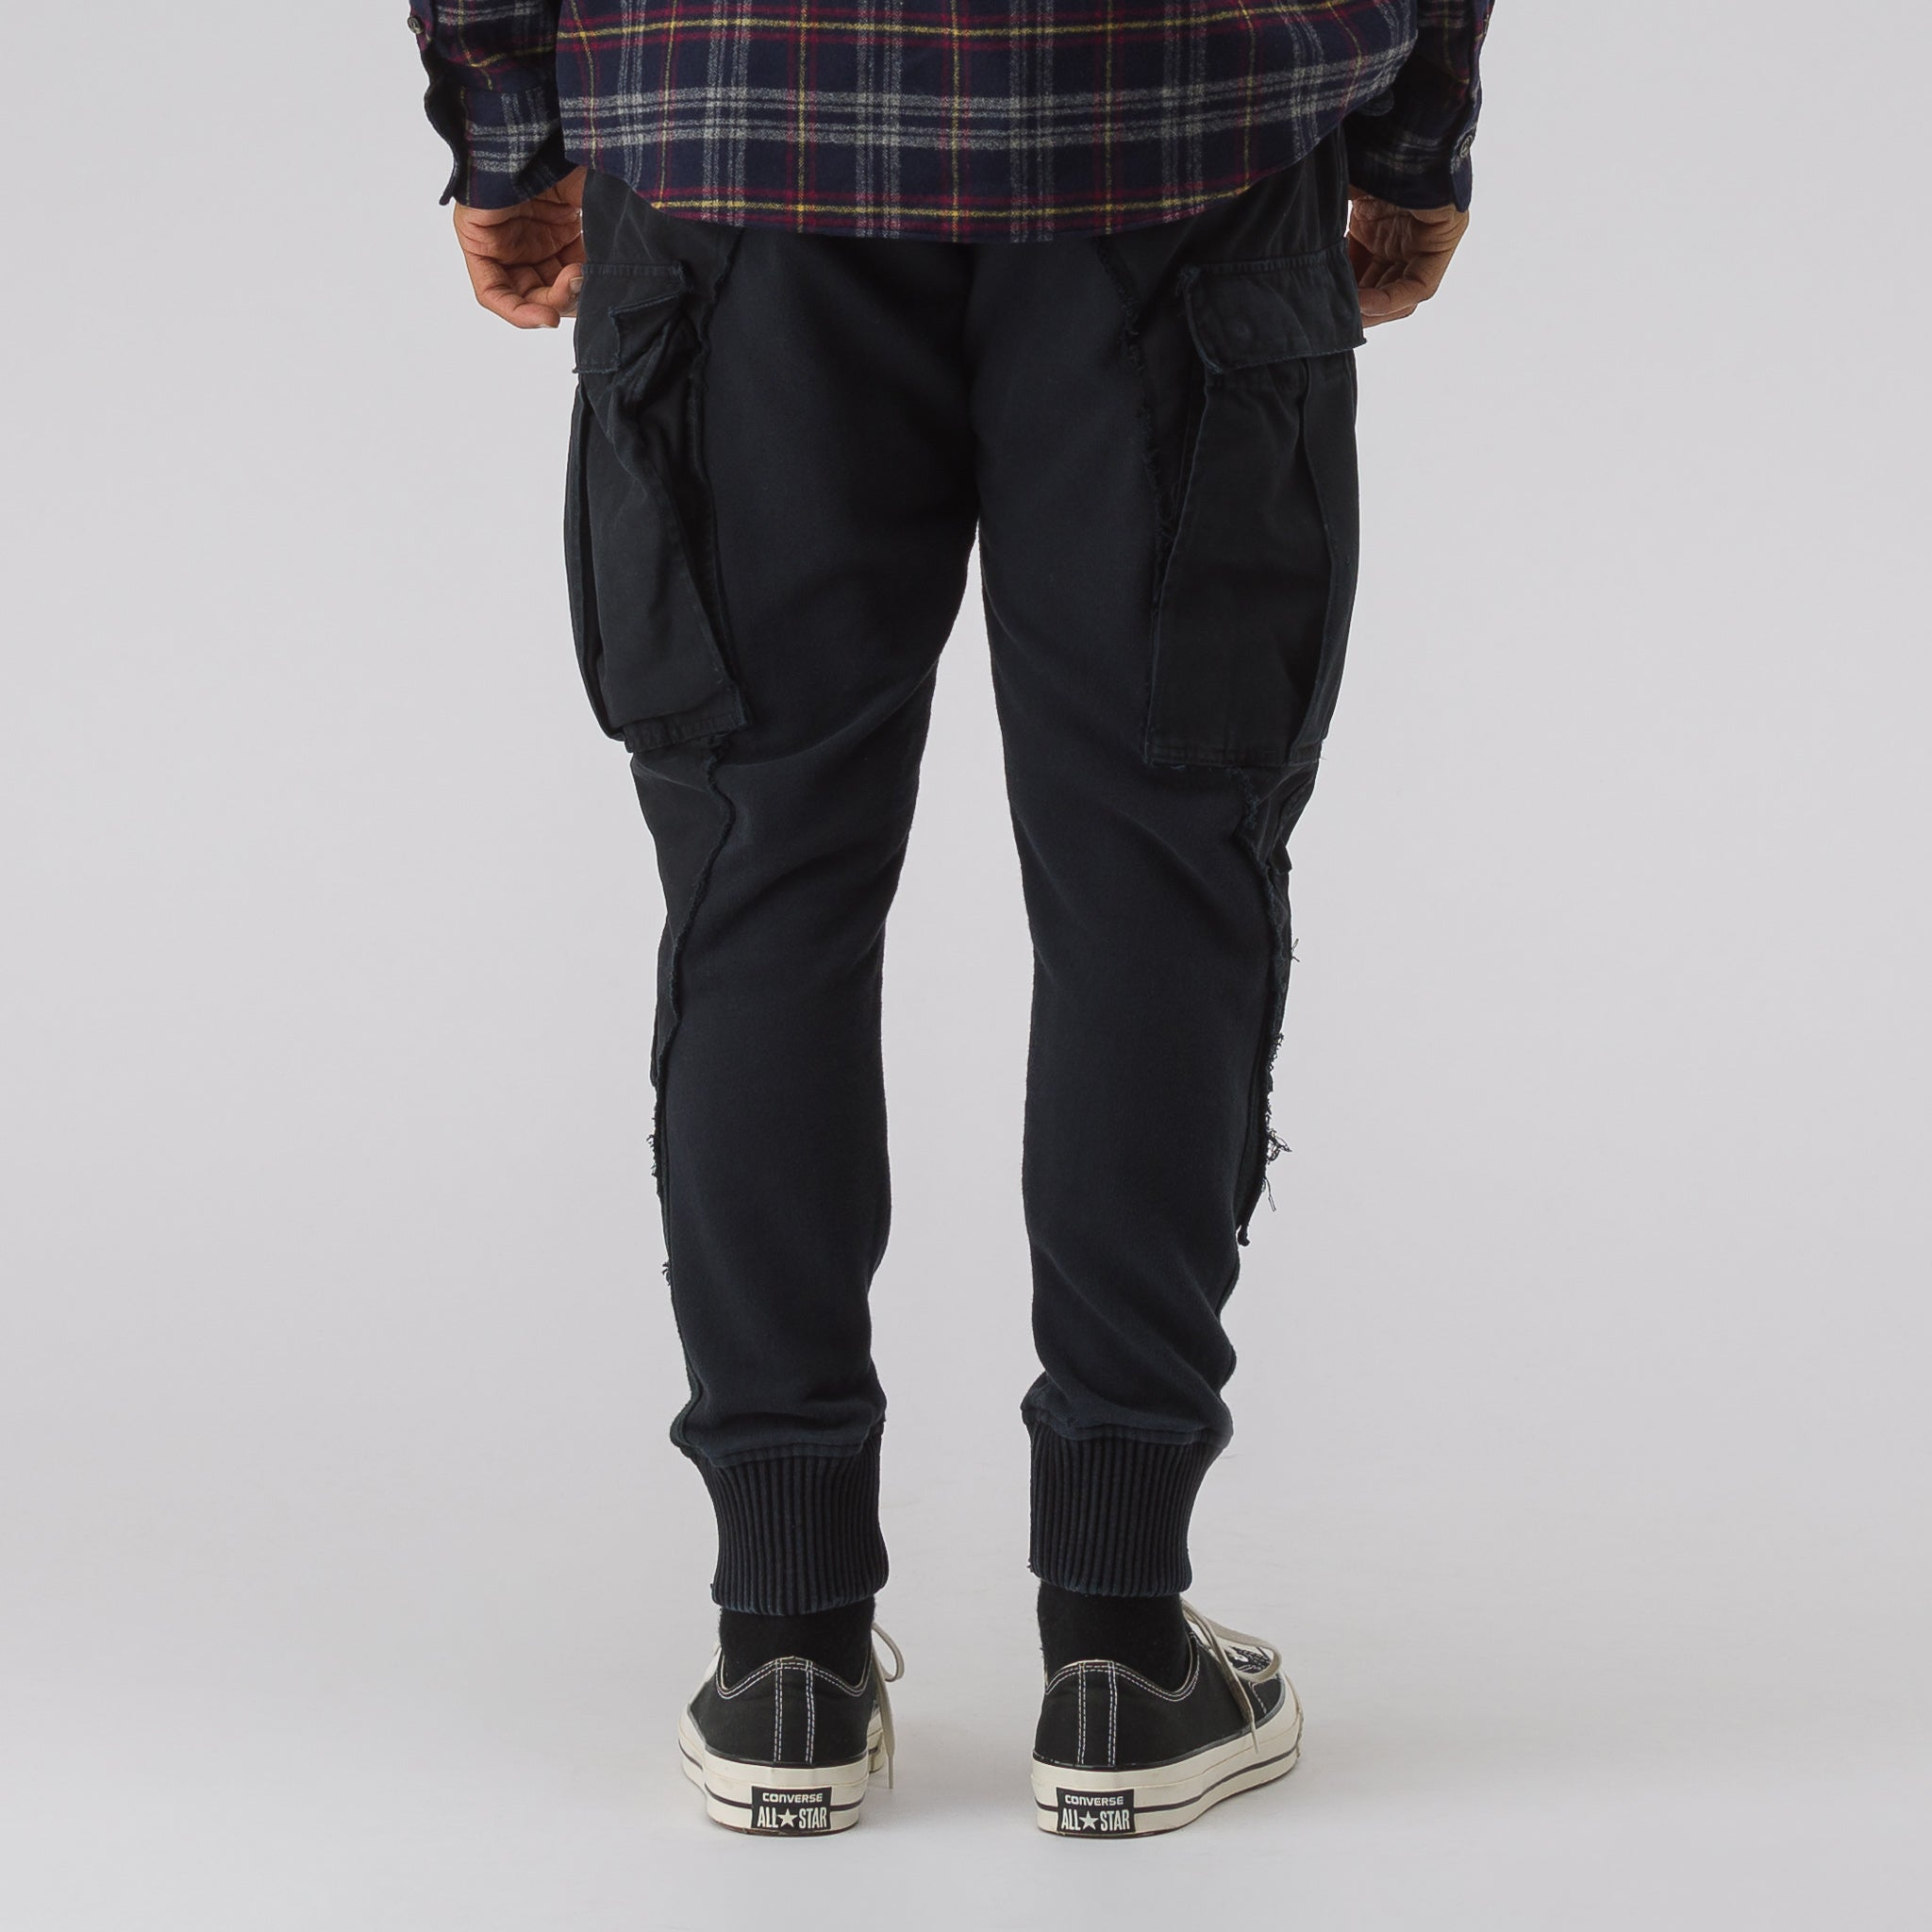 M51/Fleece Slim Lounge Pant in Black